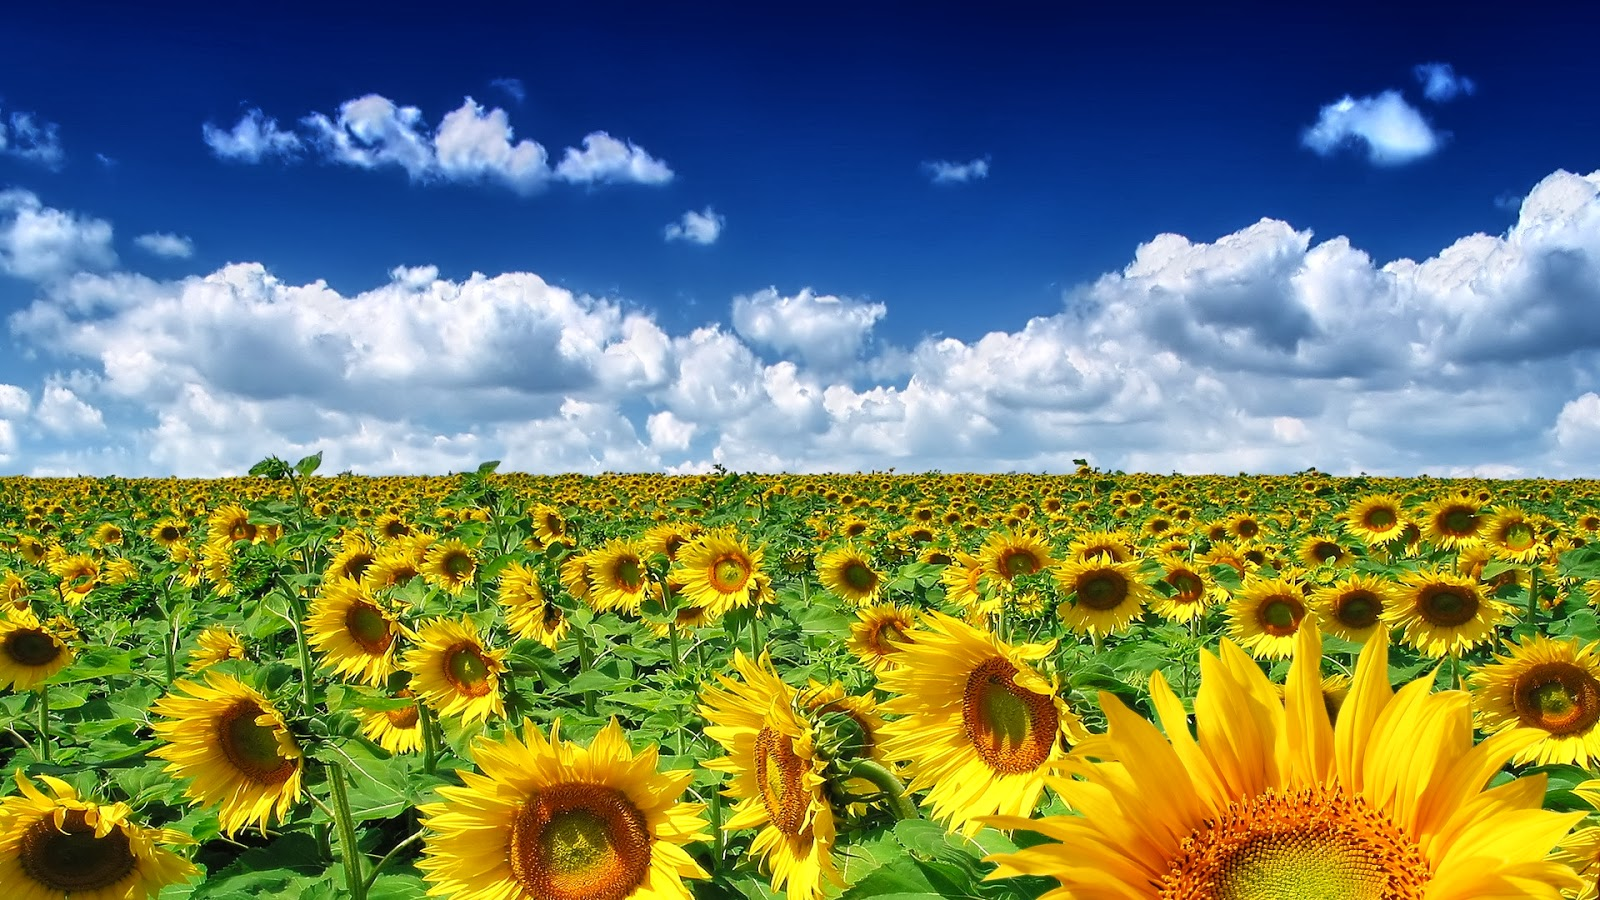 Spring Desktop Wallpapers BackgroundsNature Backgrounds If You Like It All Need To Do Is Help Us Grow By Sharing This